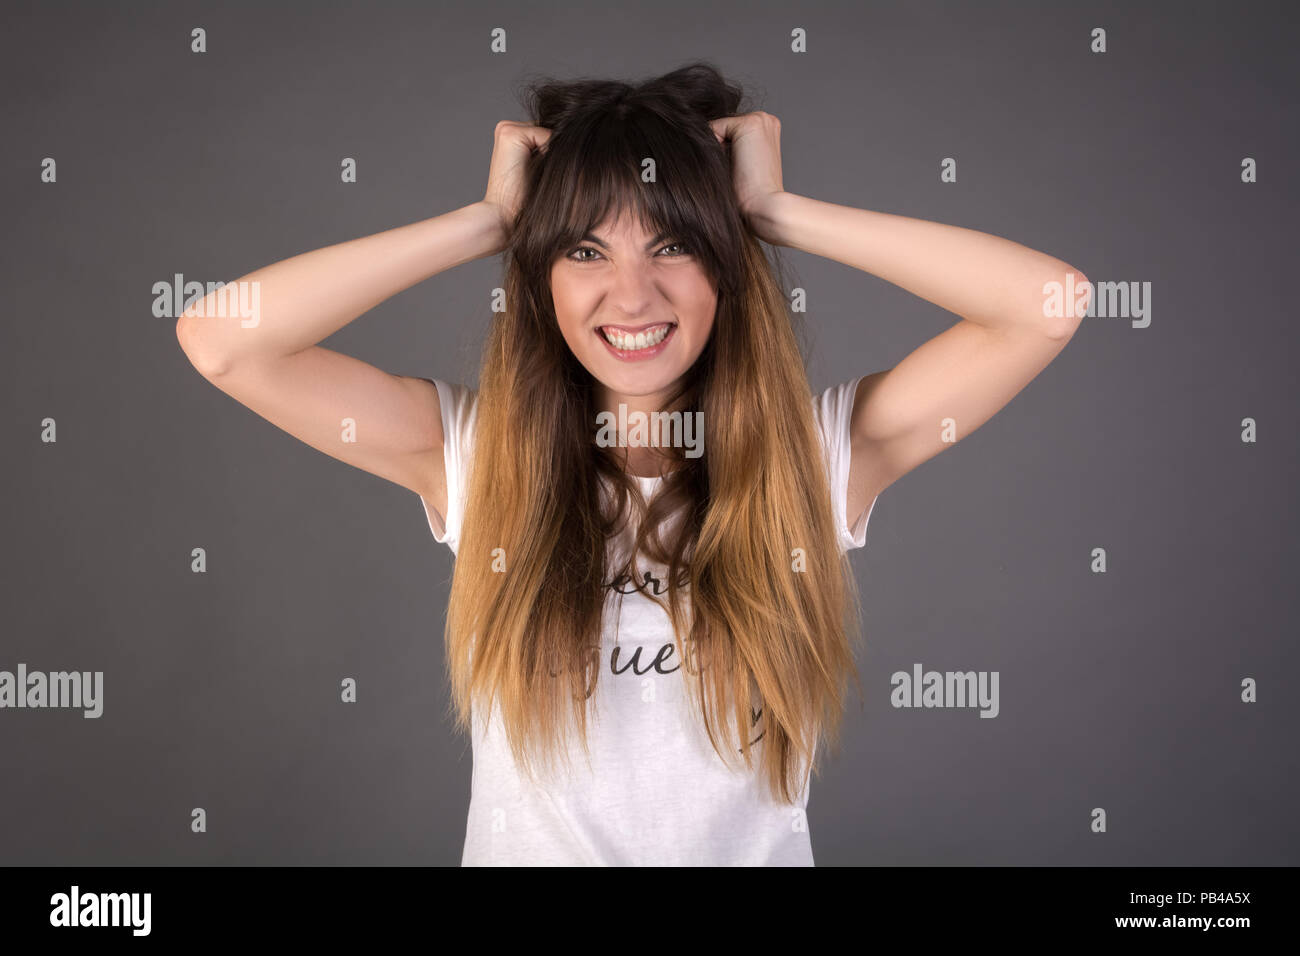 A young woman is shouting loudly. The wicked girl is tearing her hair. - Stock Image